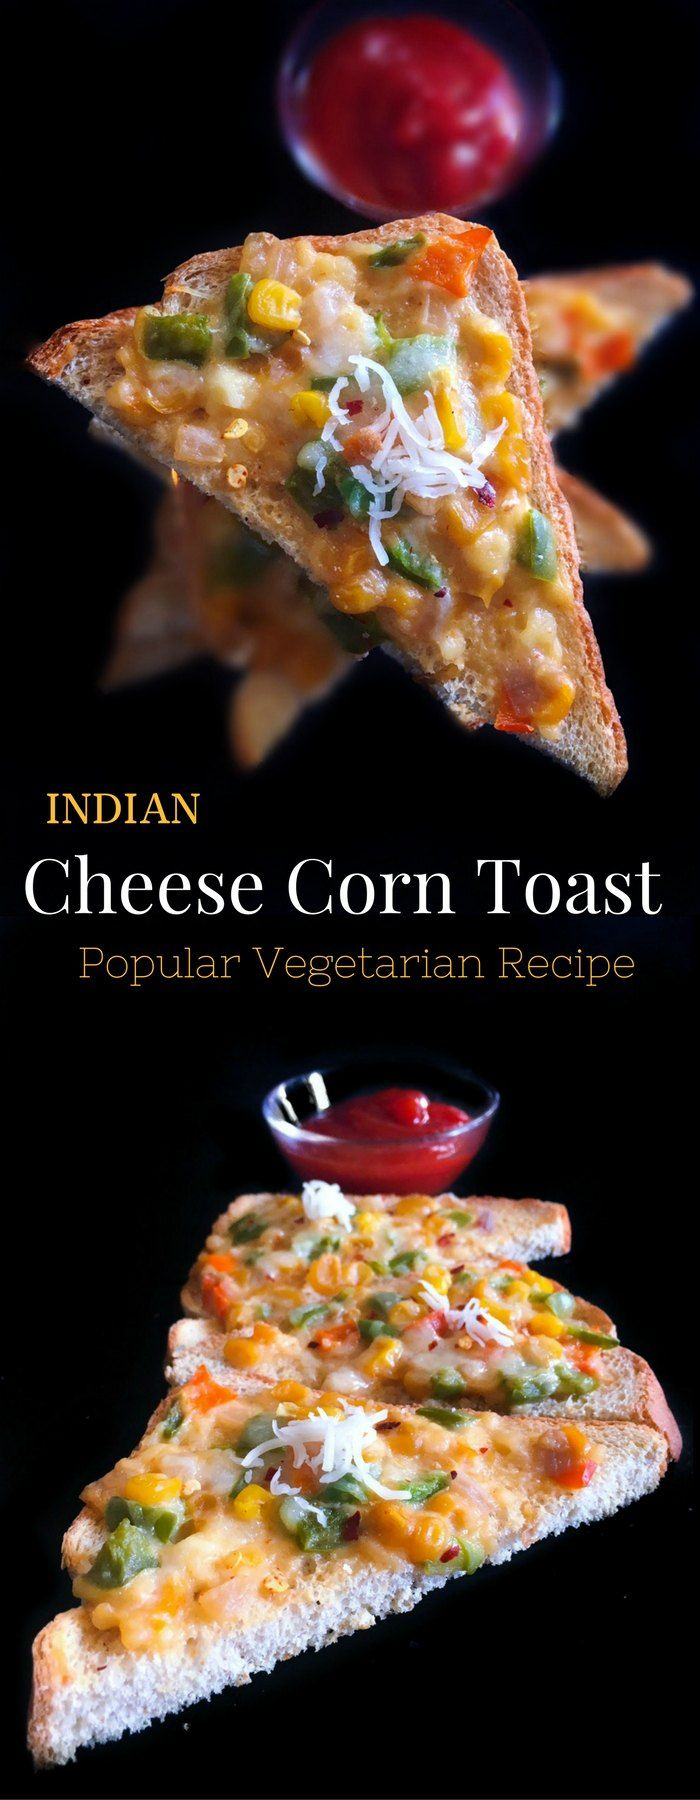 Indian Cheese Corn Toast - Popular Vegetarian Recipe : #sundaysupper #corn…